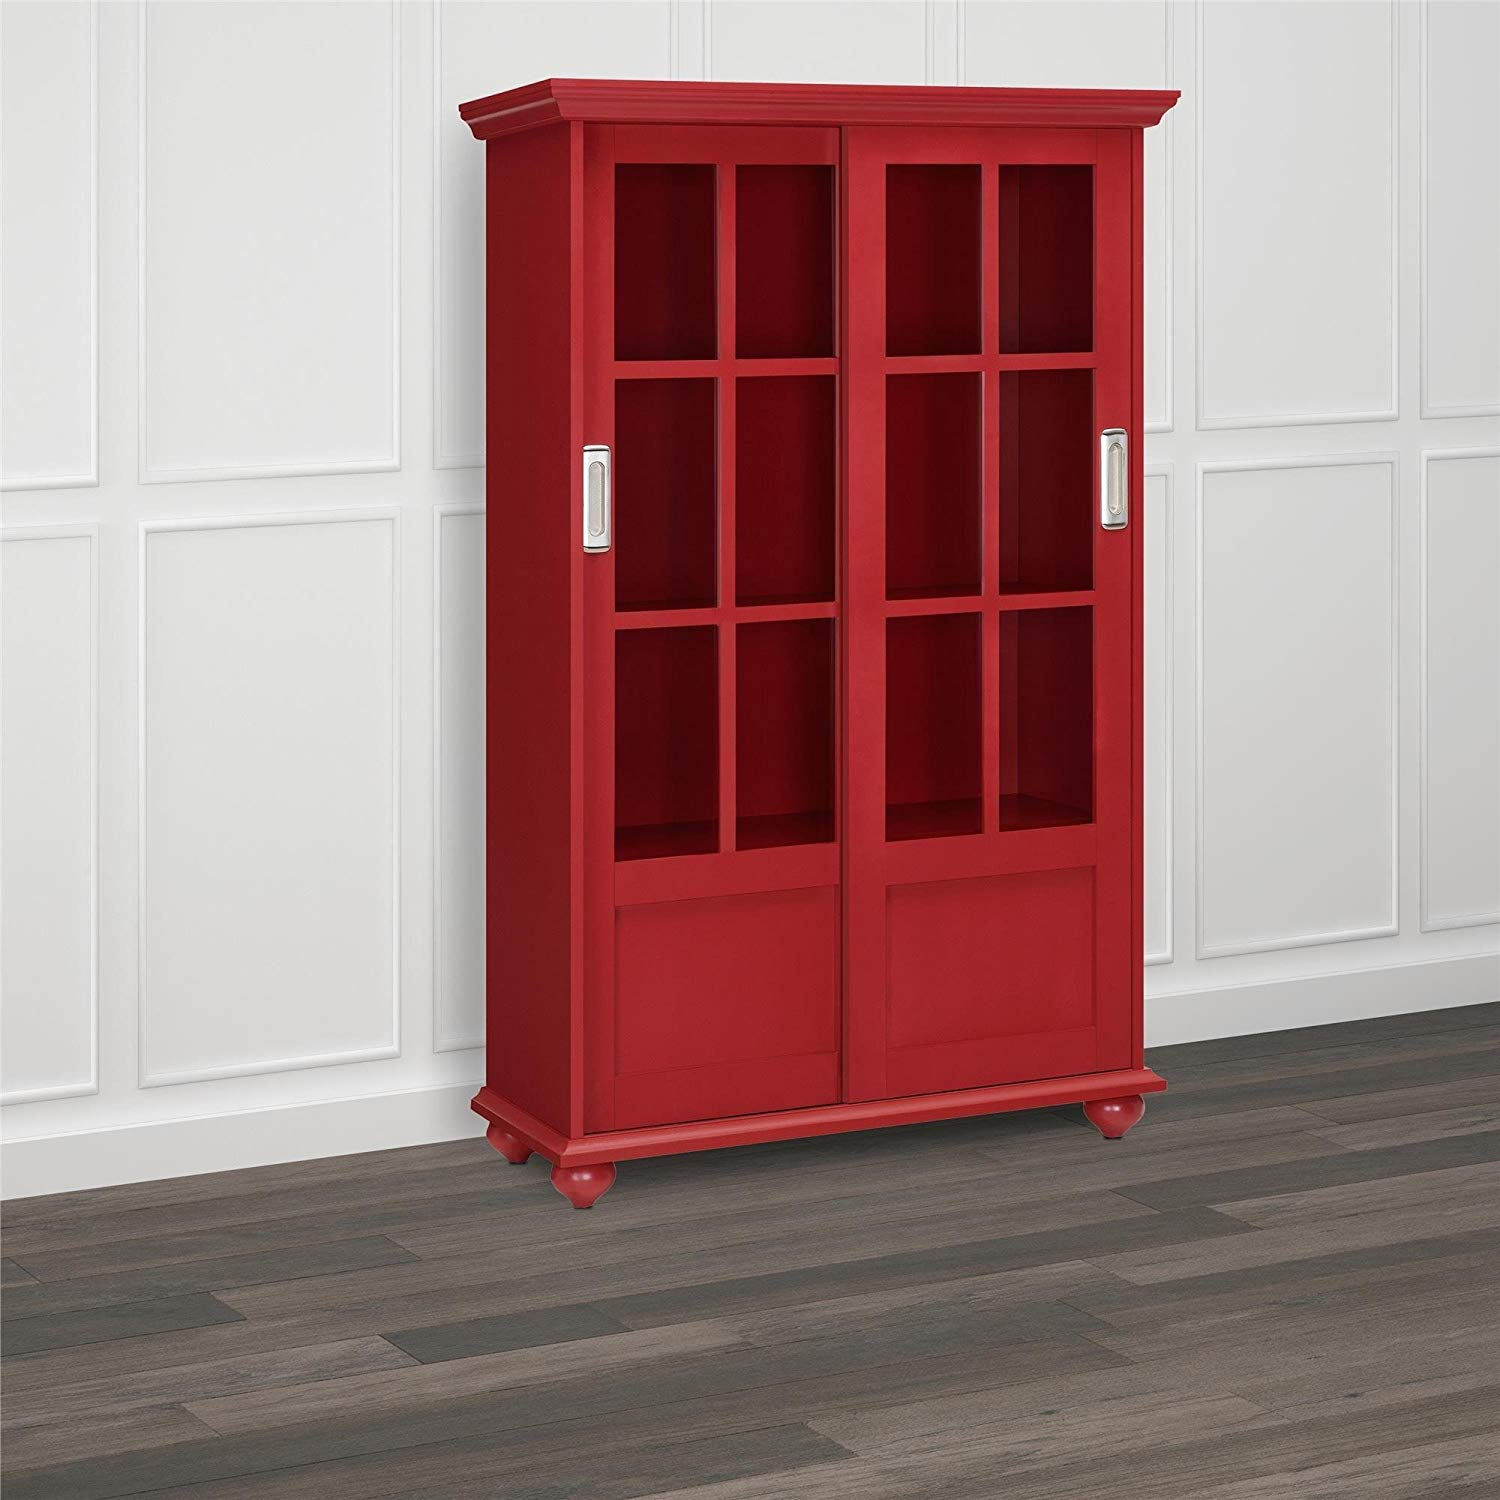 Get Quotations Katreen Abbeywood Red Window Pane Doors Wood Bookcase With Sliding Gl